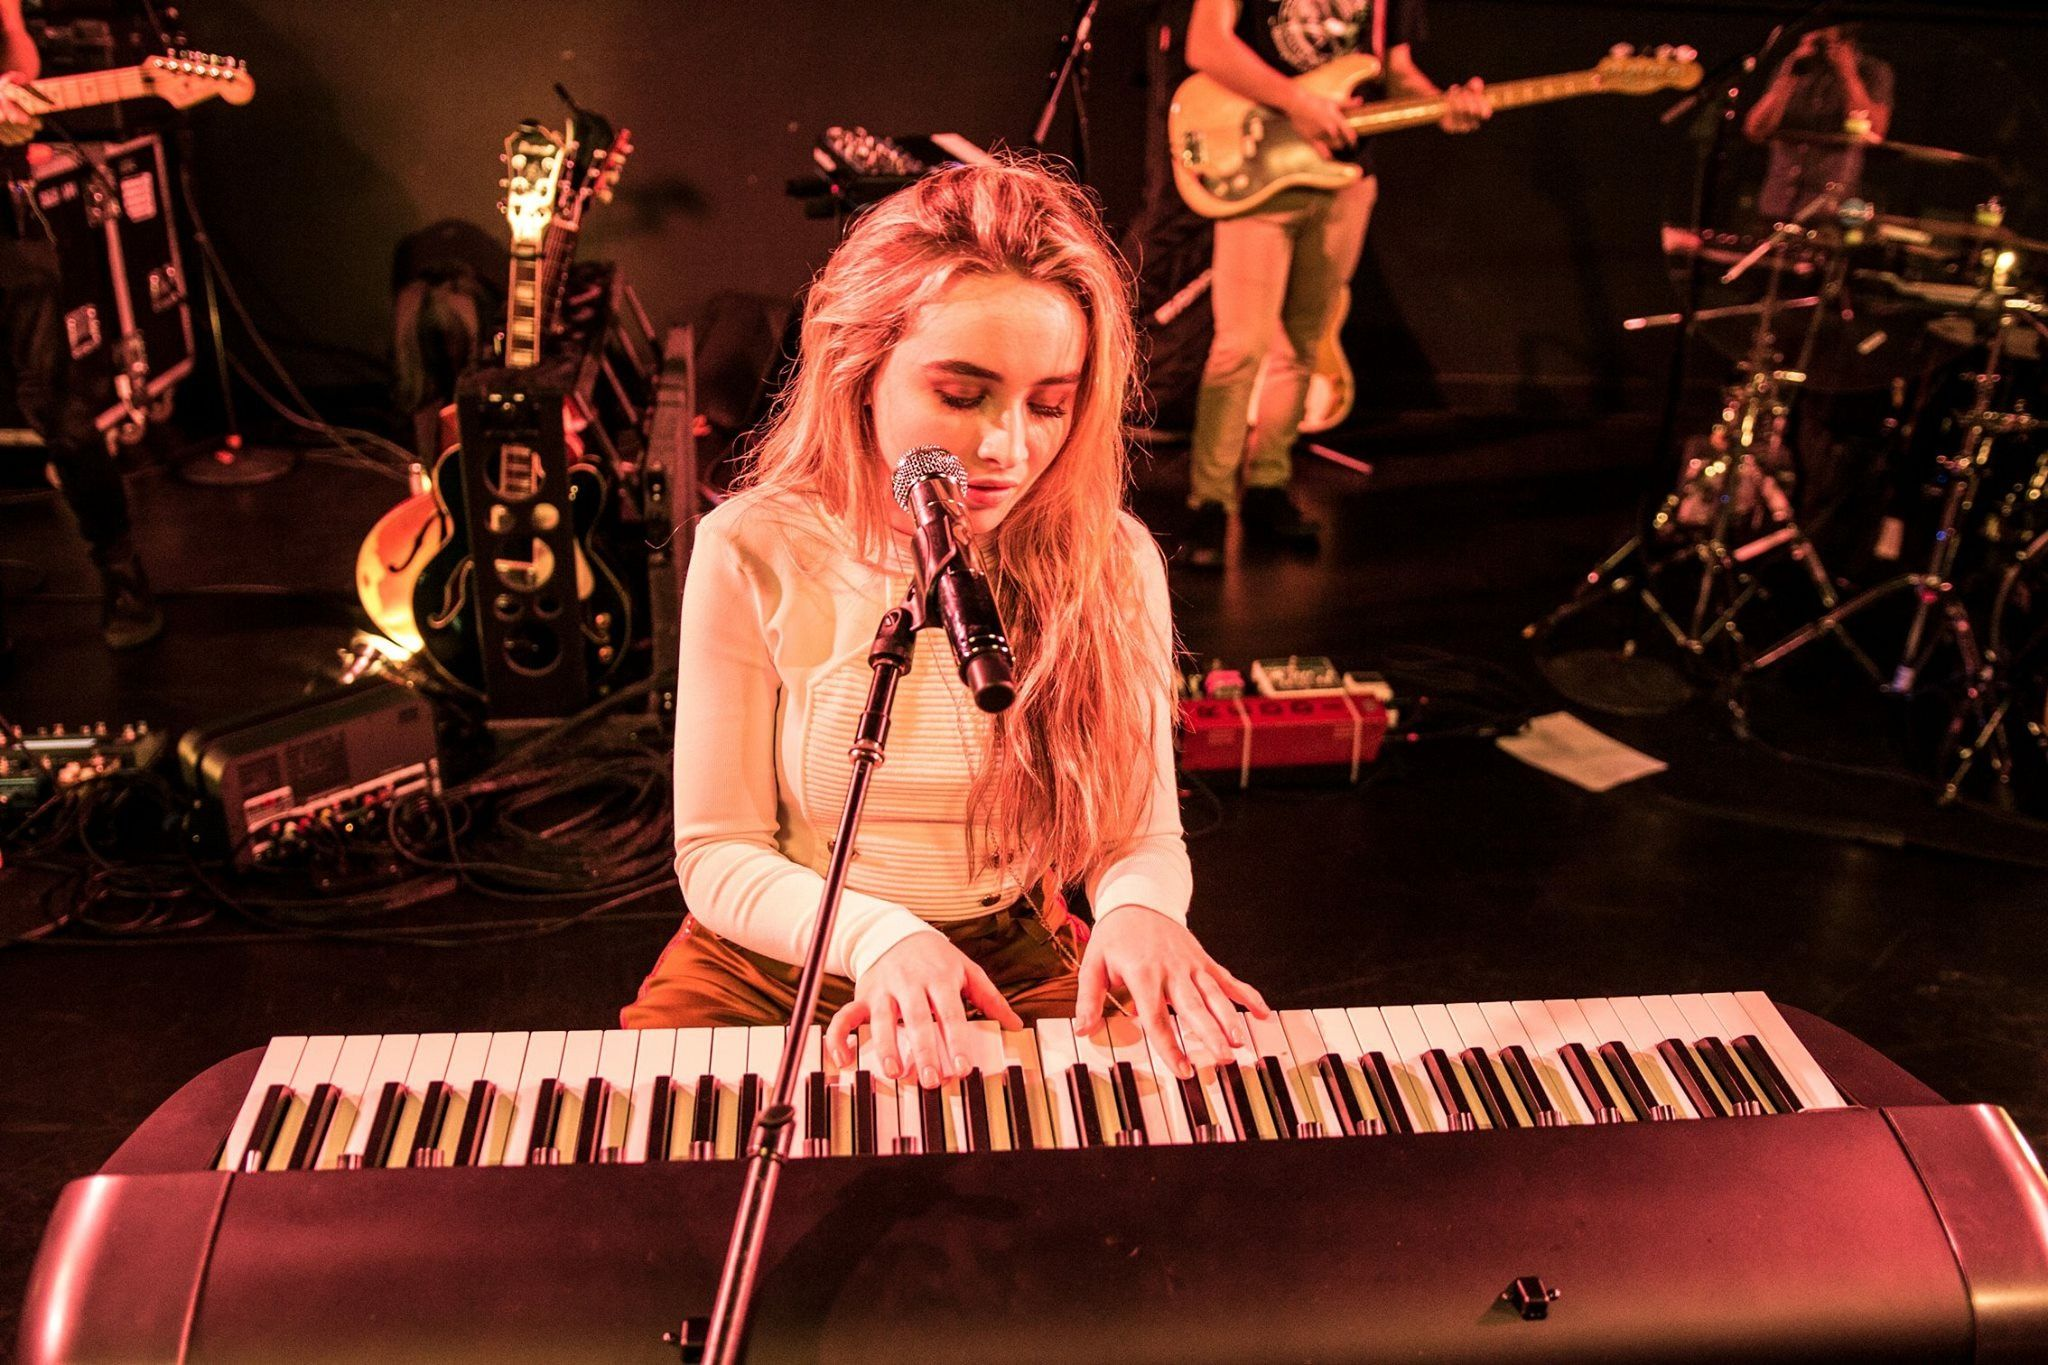 # Sabrina carpenter music # Sabrina carpenter # Sabrina carpenter and piano